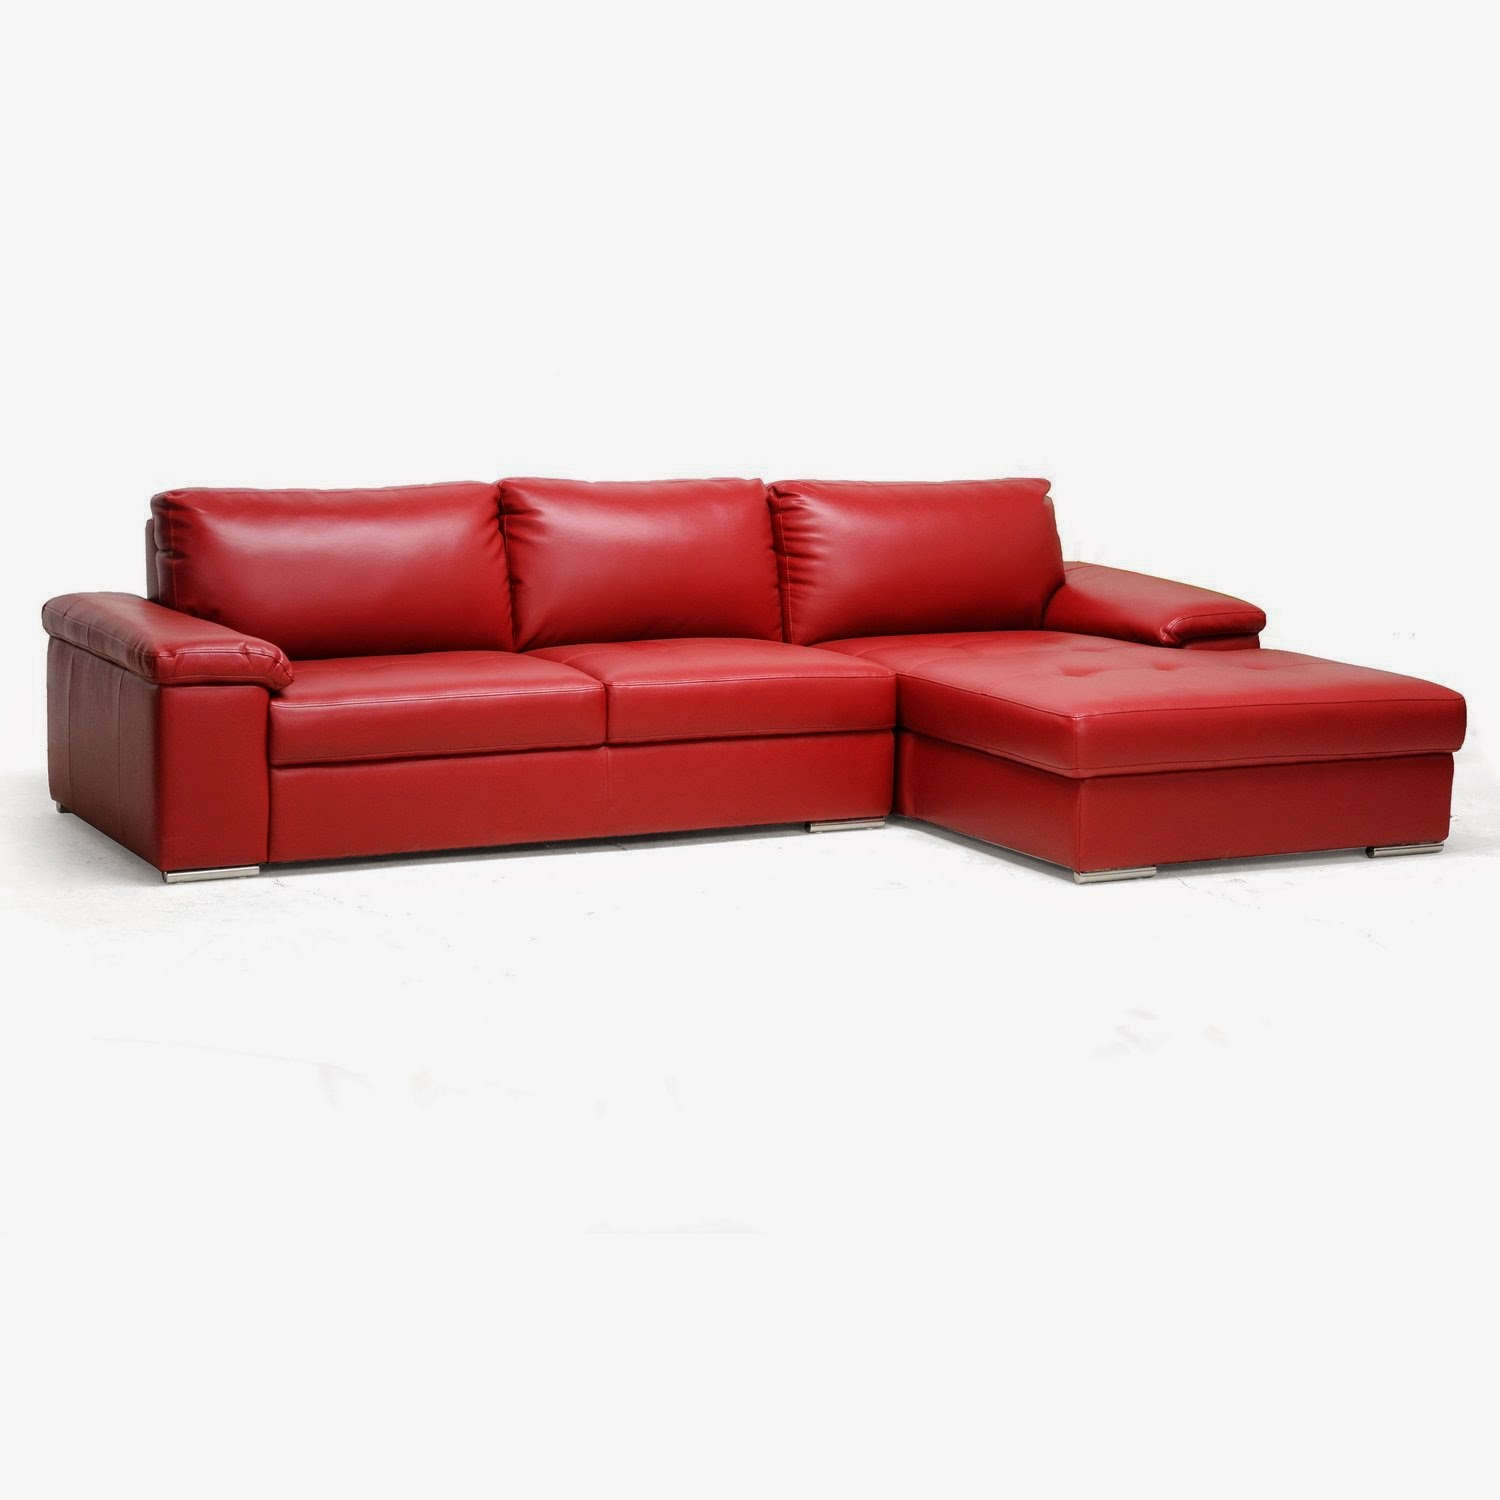 red couch: red leather sectional couch